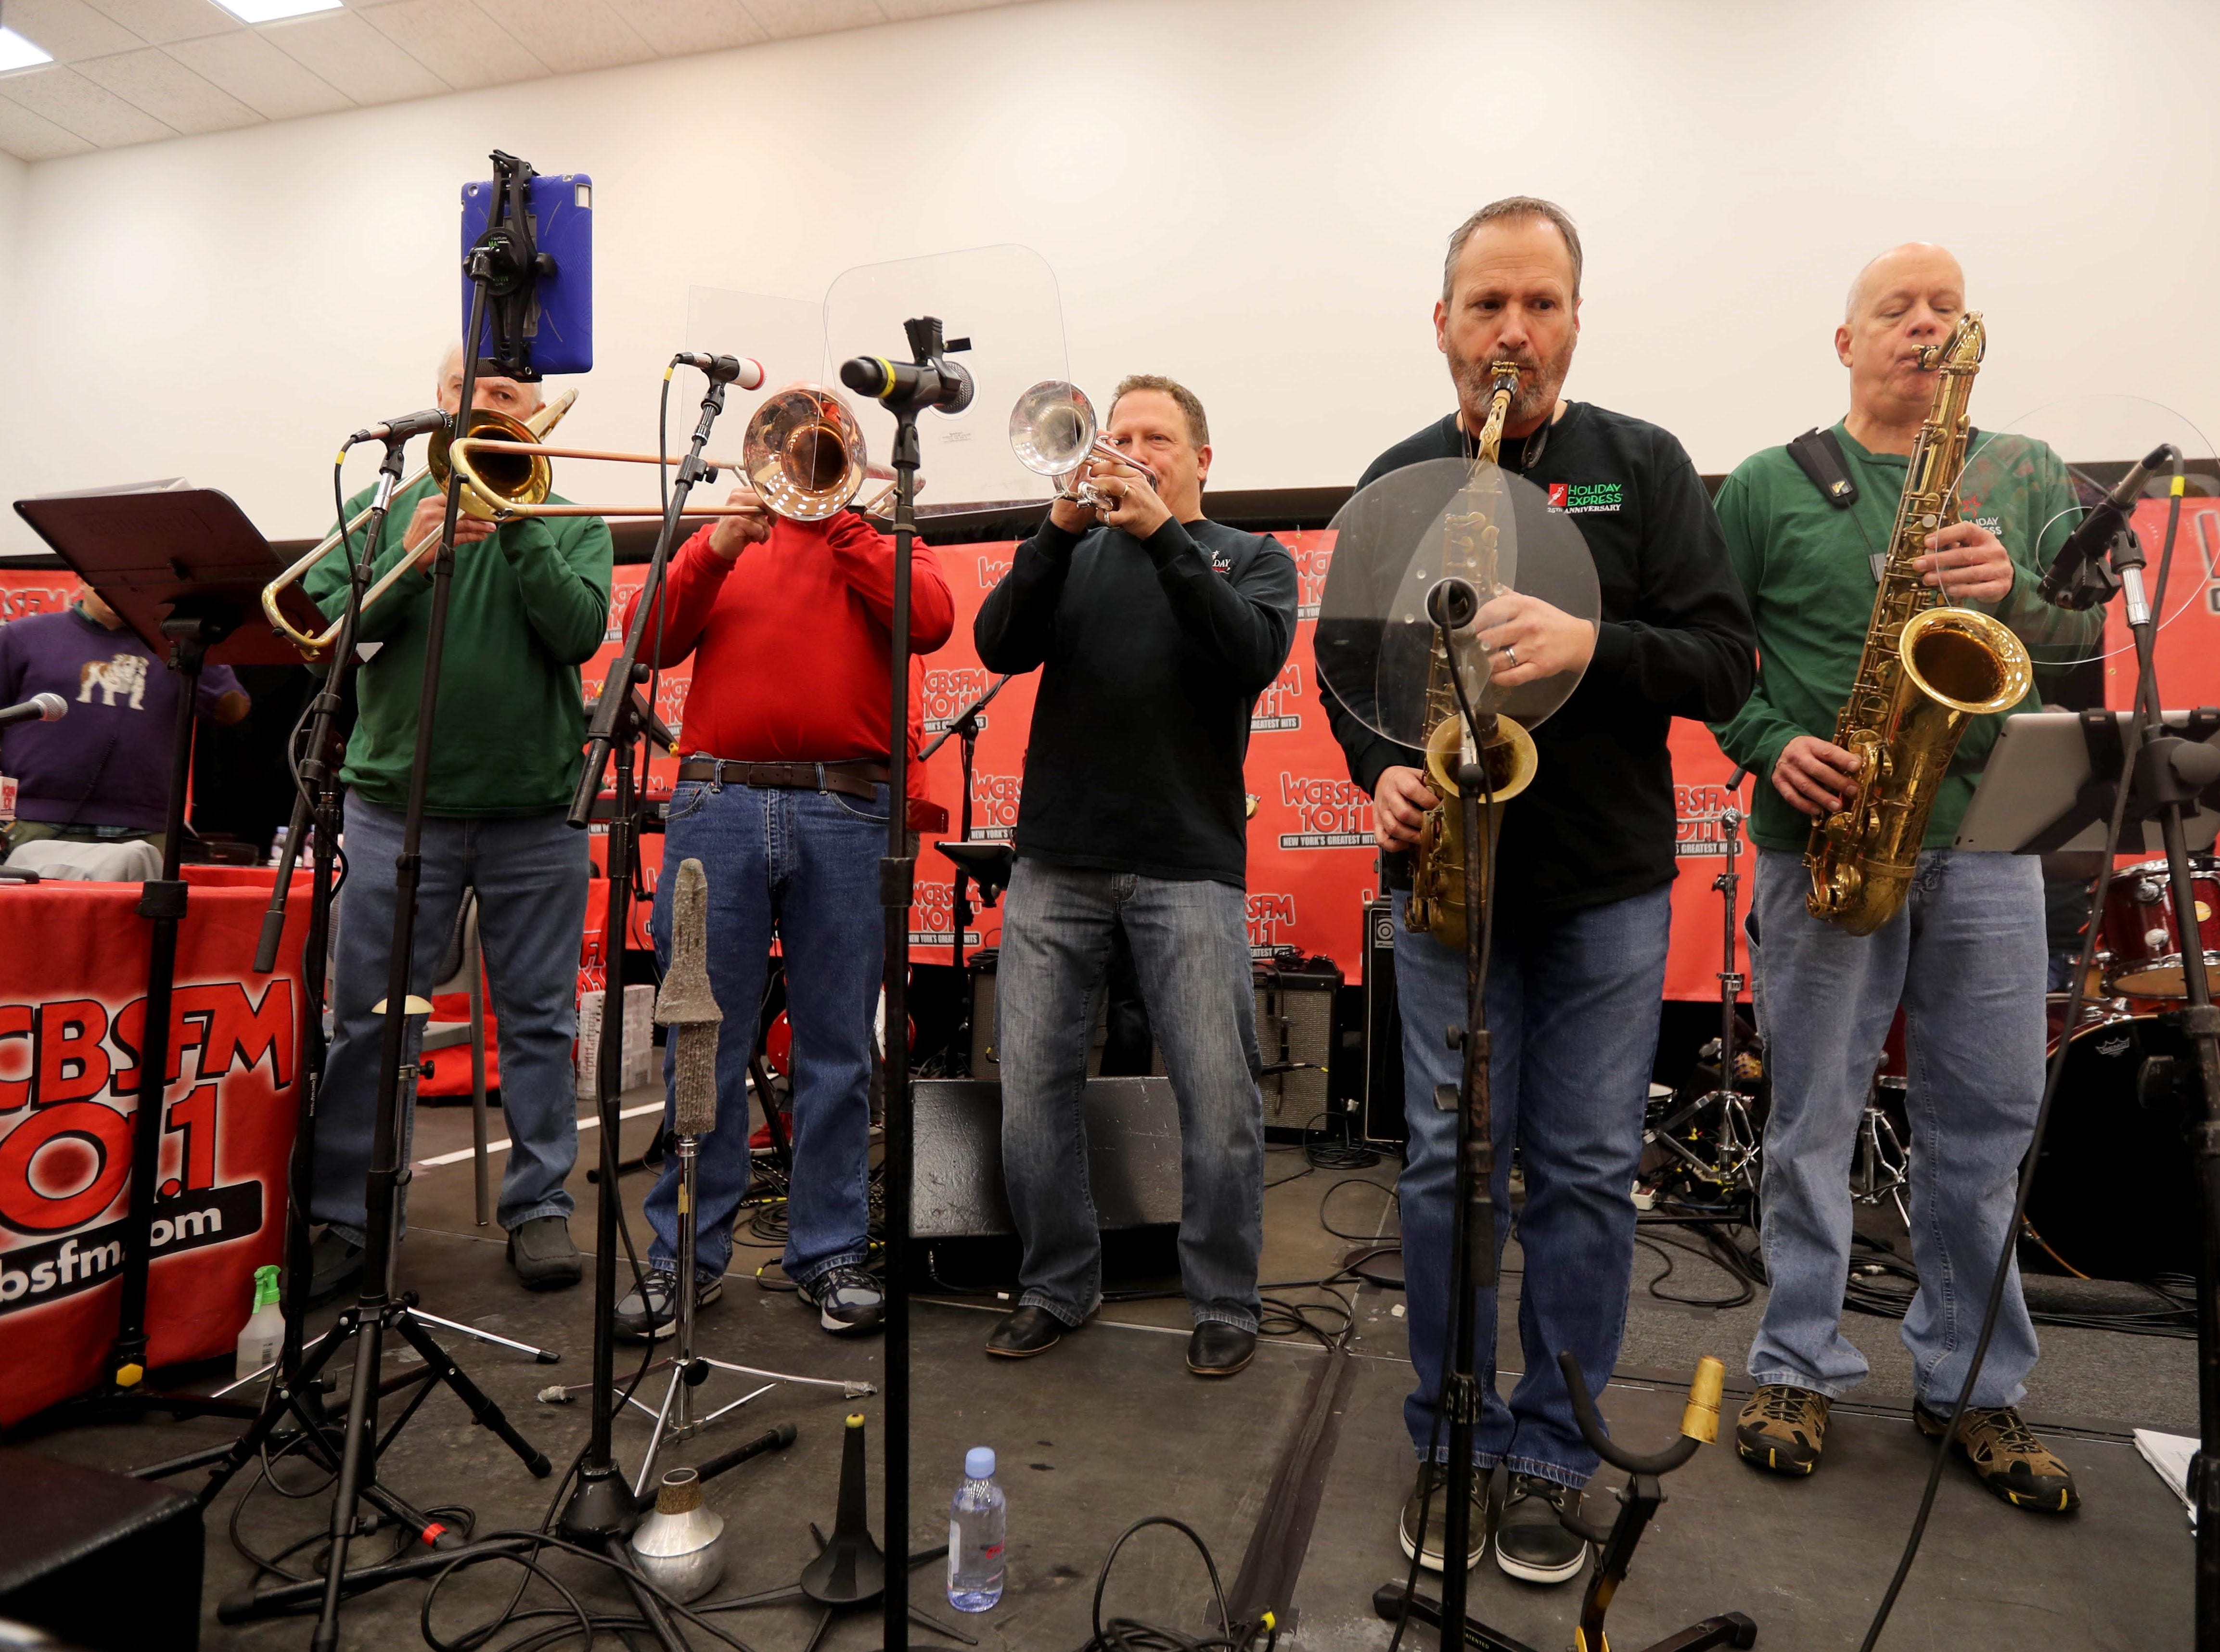 Musicians perform holiday songs during the annual holiday show at Blythedale Children's Hospital in Valhalla Dec. 14, 2018. Scott Shannon, morning disc jockey with WCBS-FM hosts the show every year. This year's show included performances by Rob Thomas of Matchbox Twenty, Mark Rivera, who is Billy Joel's longtime saxophonist, and Grammy nominated singer and songwriter Gavin DeGraw. The event included a live auction that featured autographed guitars by Jon Bon Jovi and Rob Thomas and tickets to a Billy Joel concert at Madison Square Garden.